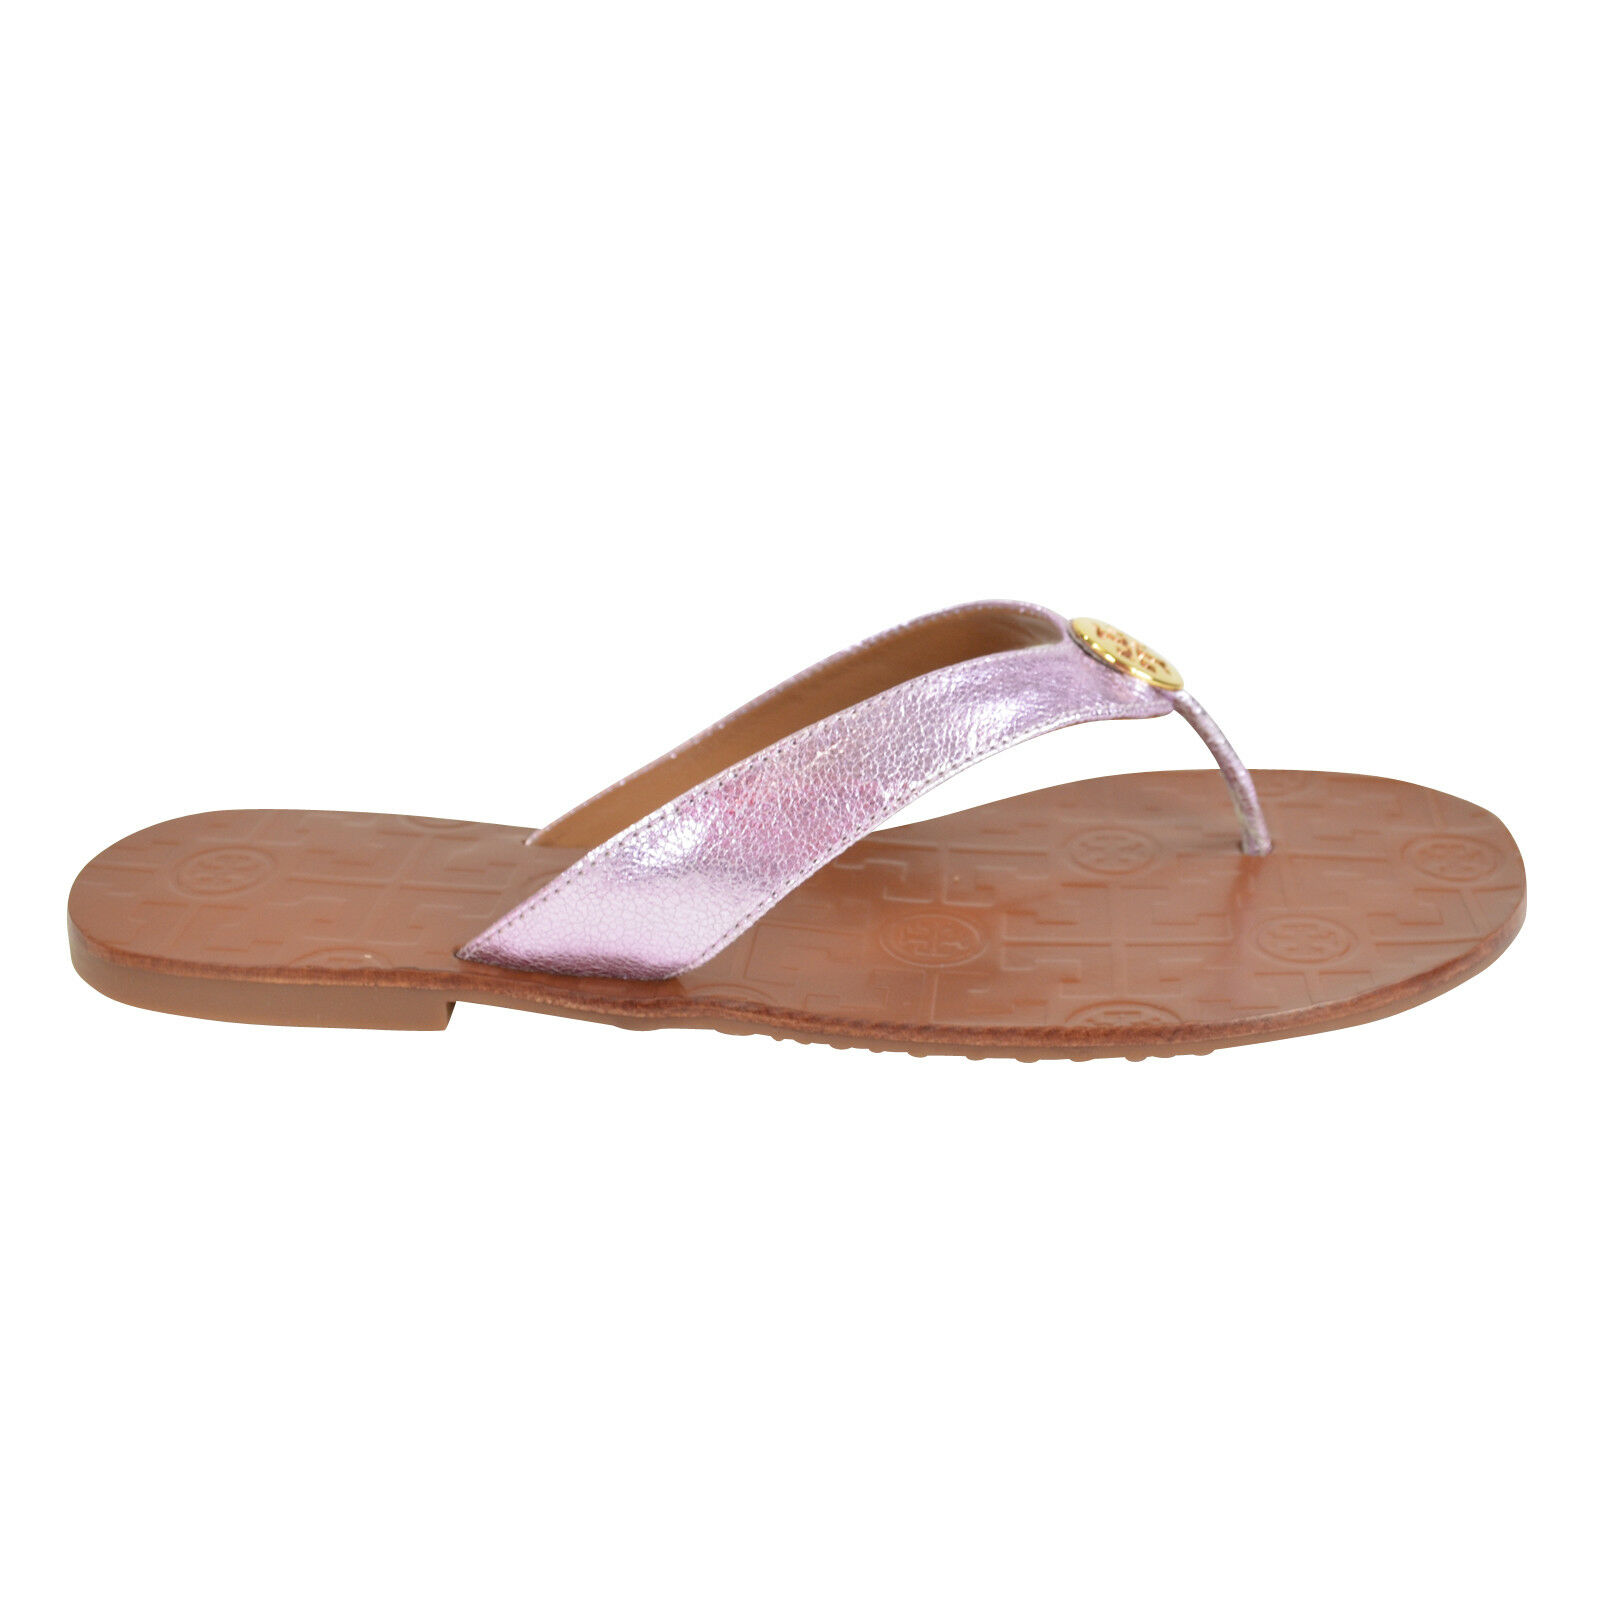 f6658ea90aeef4 Tory Burch THORA Reverse Metallic Leather Thong Sandals in Rosa Pink ...